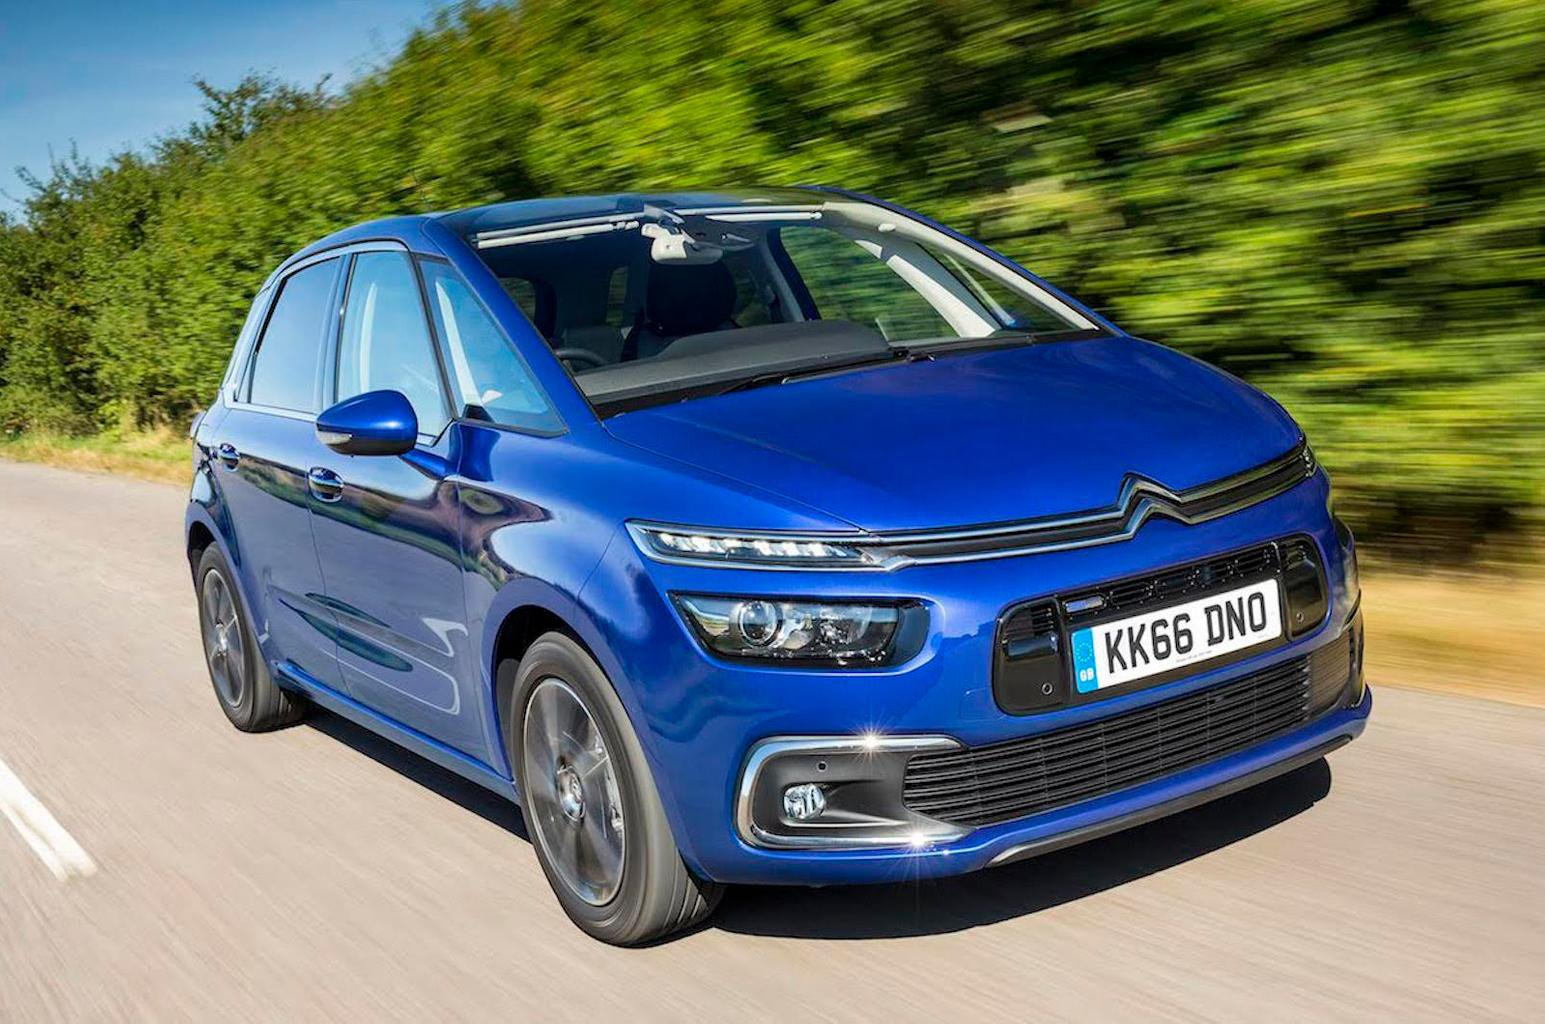 2016 Citroën C4 Picasso 1.2 Puretech 130 review